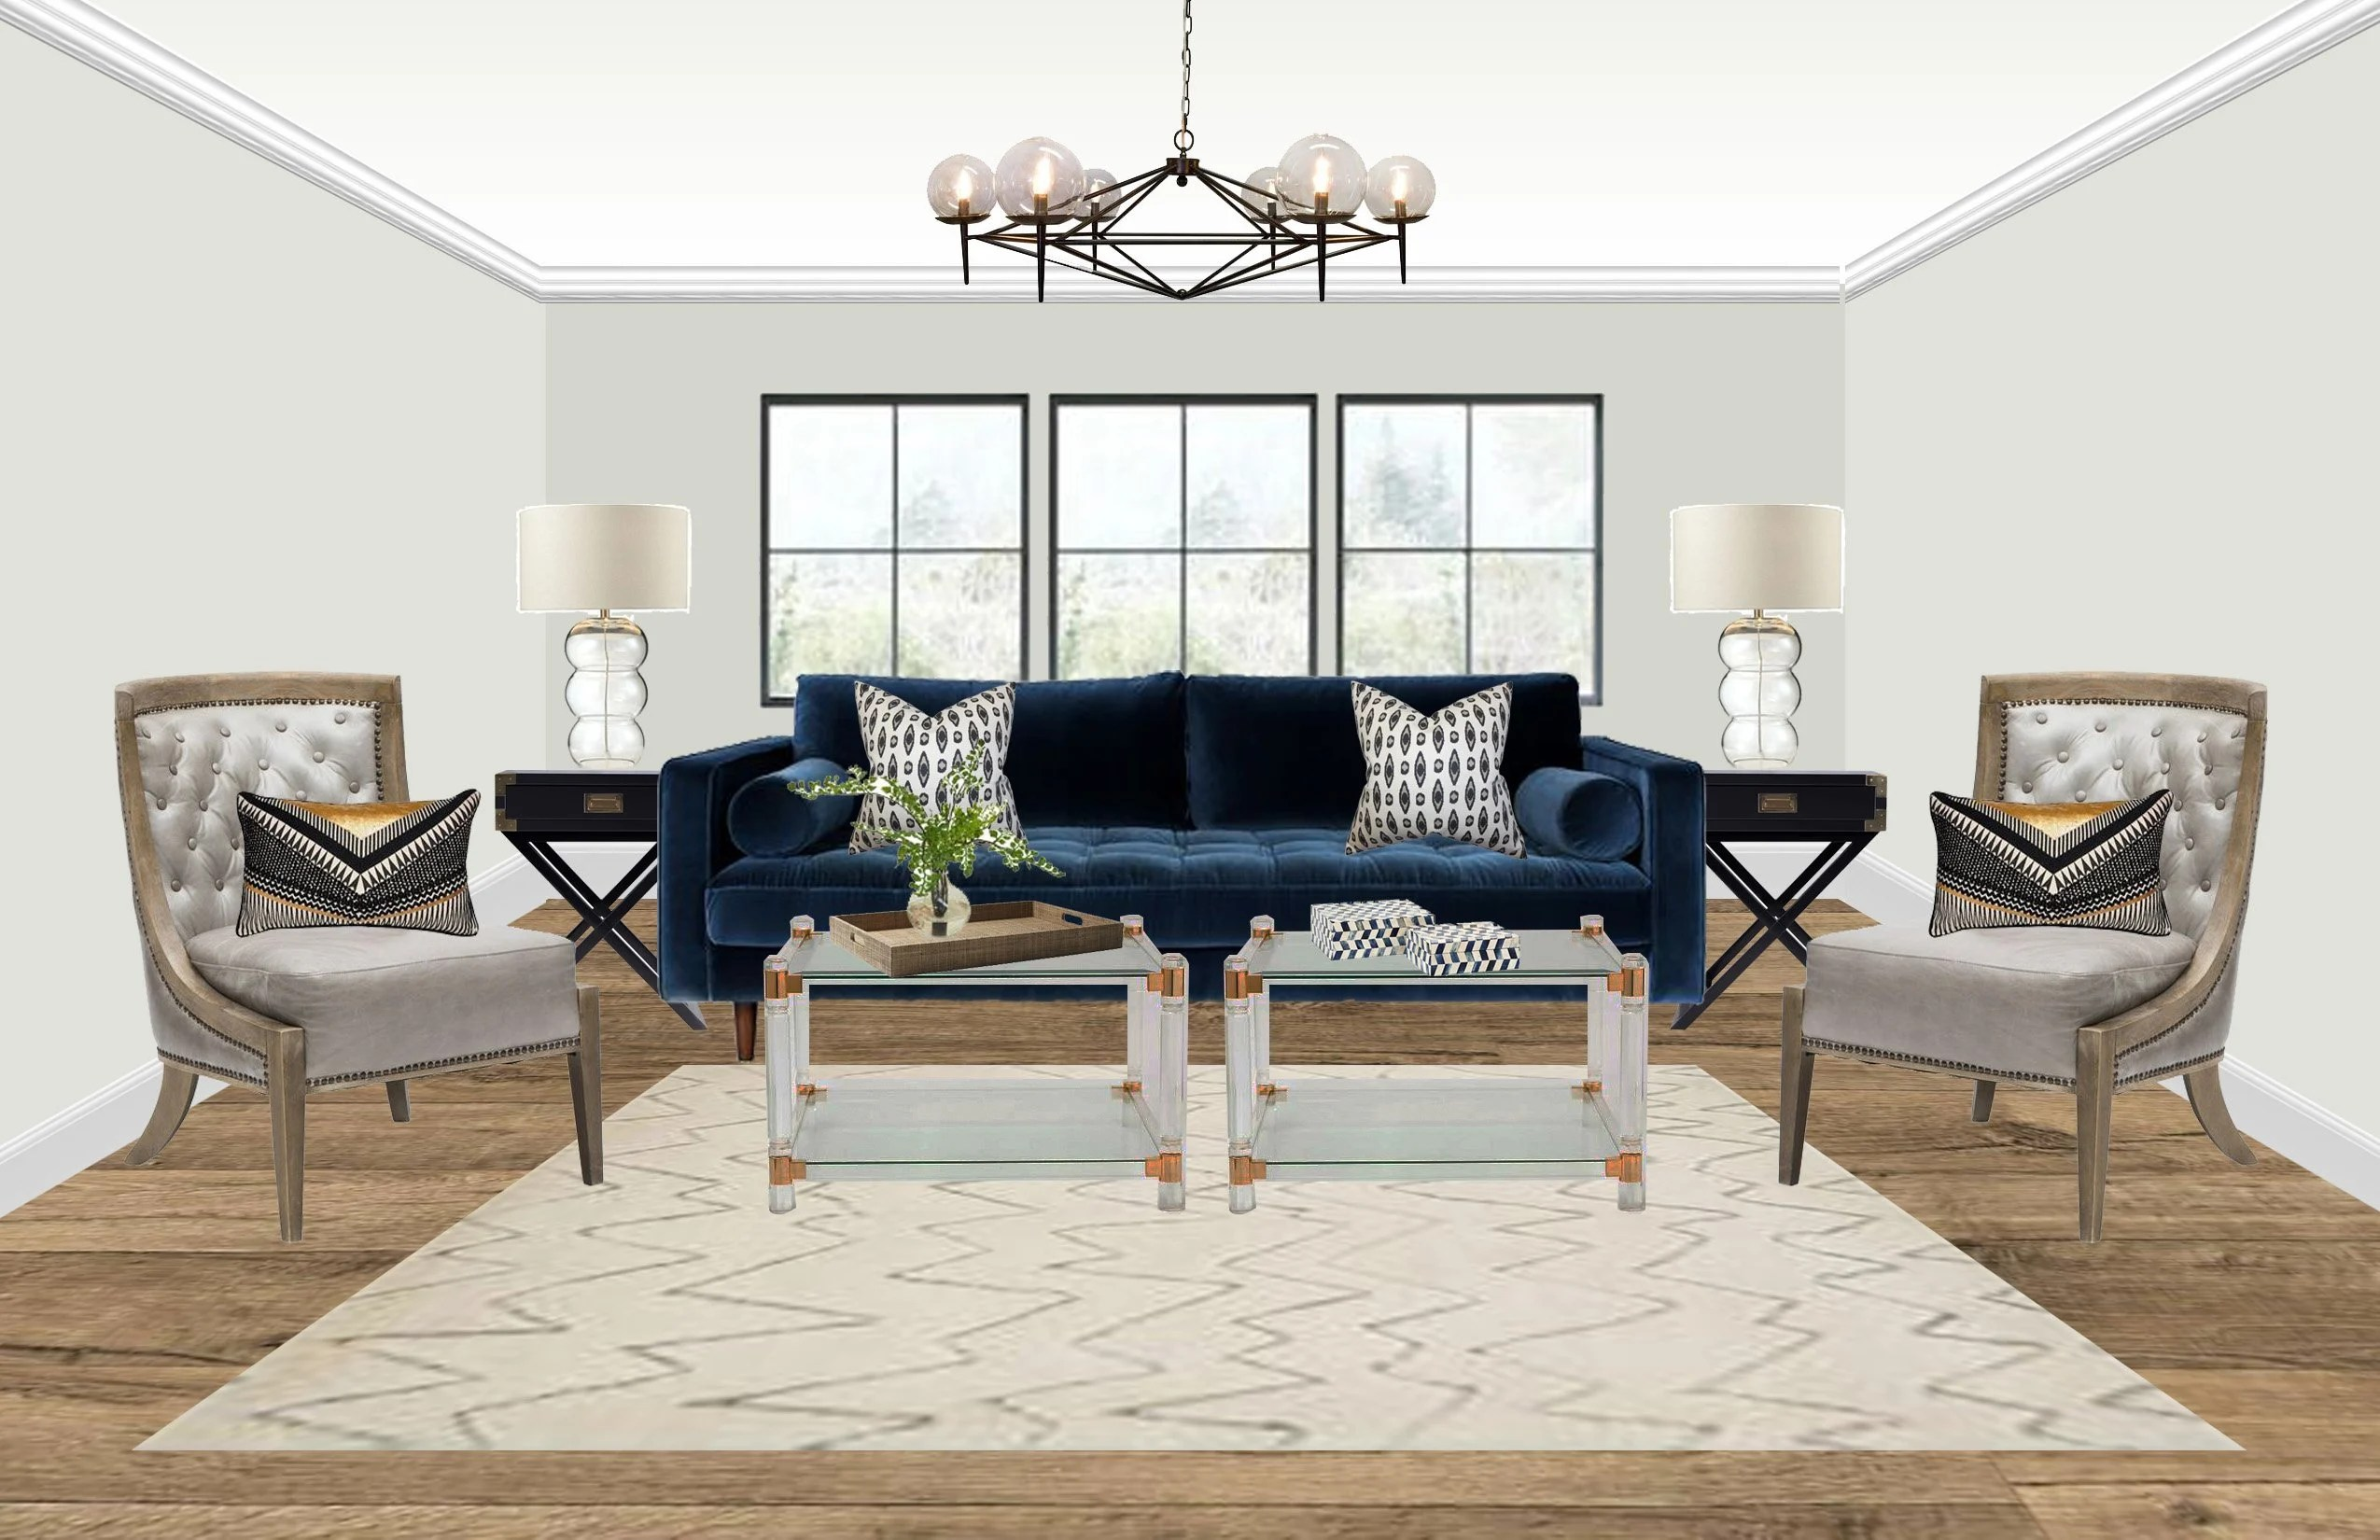 Interior Design Plan The Room Of Your Dreams In Photoshop